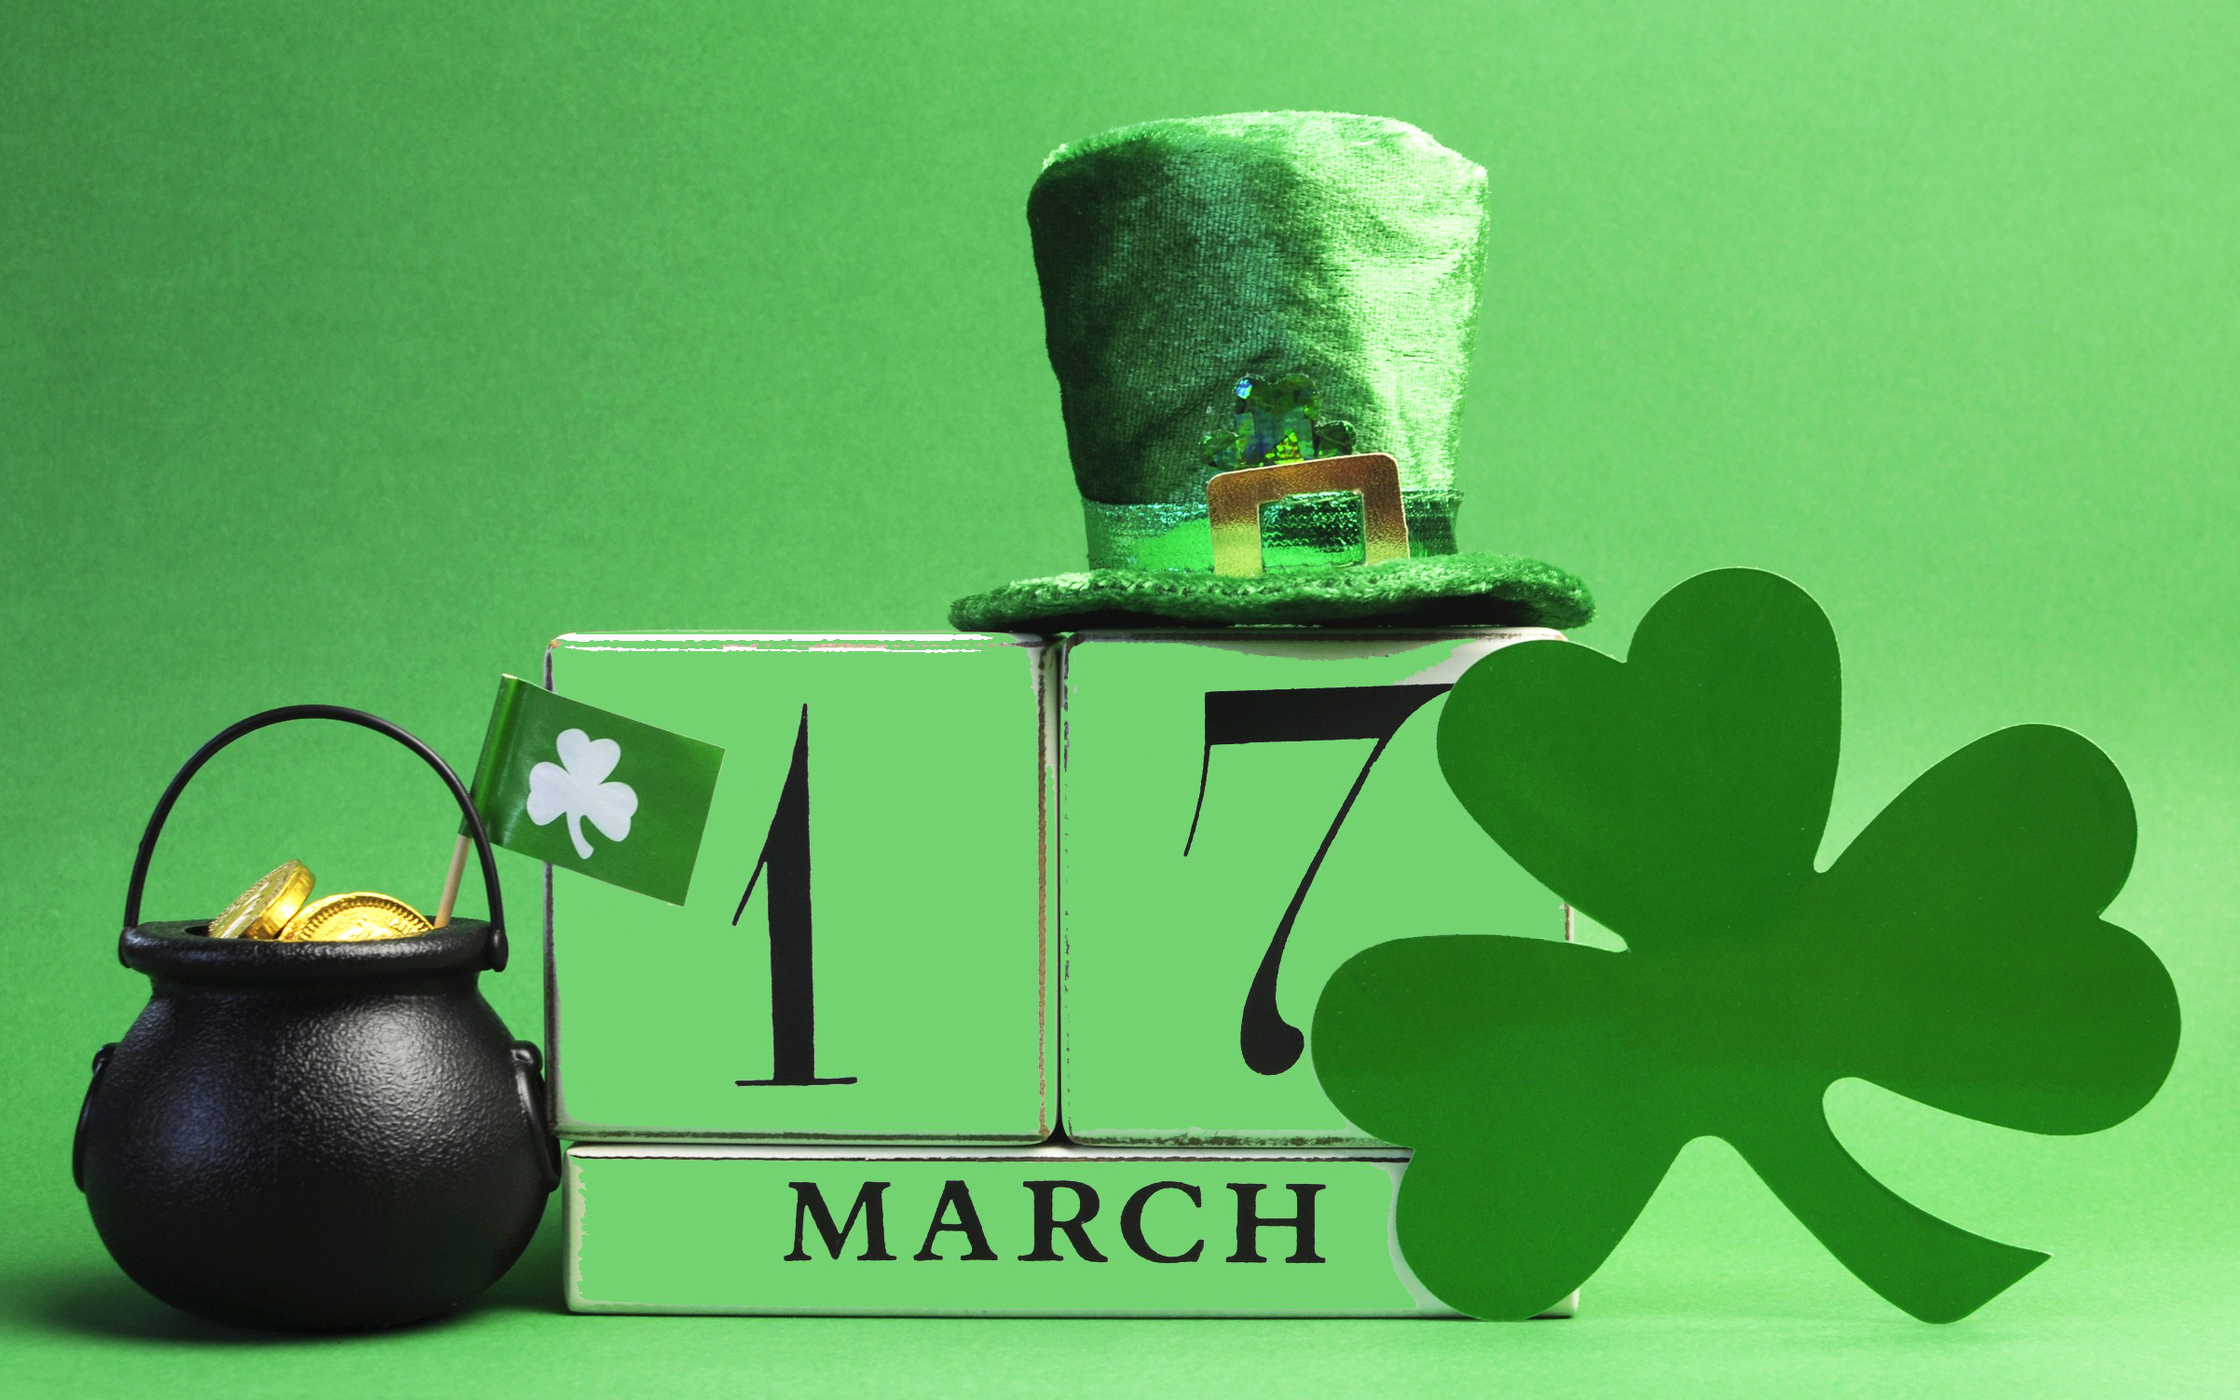 Download Happy St Patricks Day 17 March HD Wallpaper Search more 2240x1400